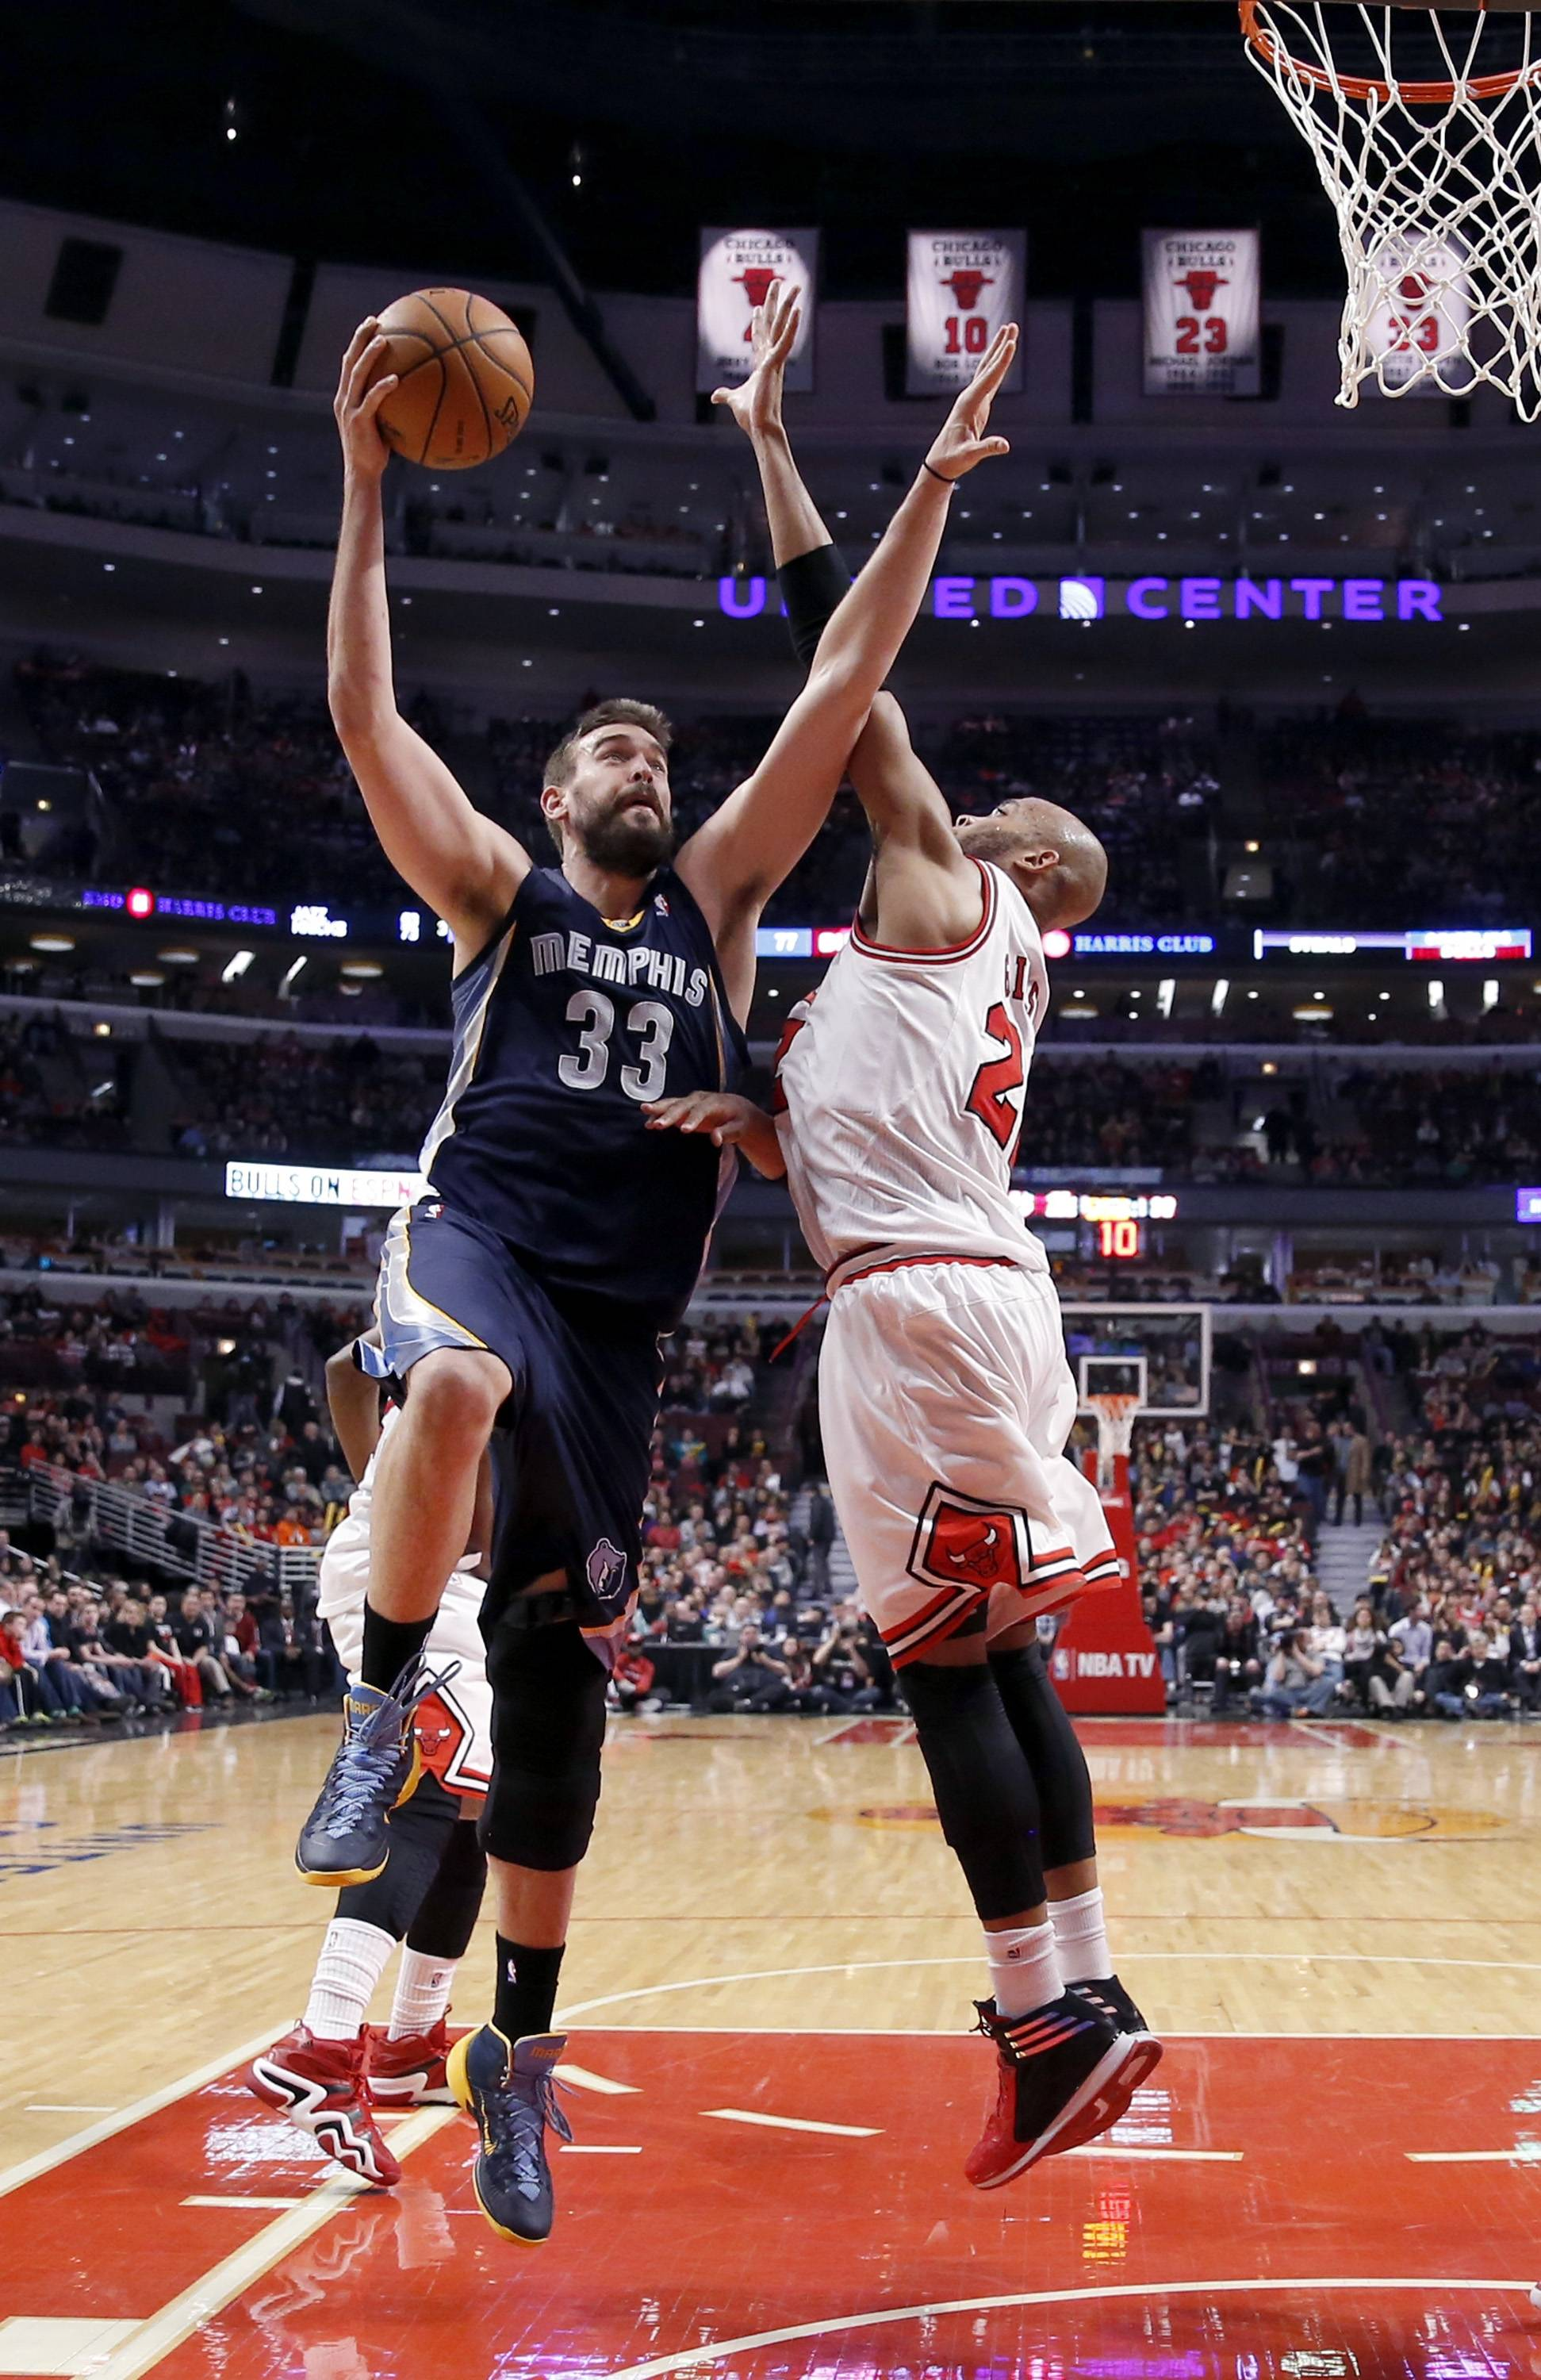 Memphis Grizzlies center Marc Gasol (33) shoots over Chicago Bulls' Taj Gibson (22) during the second half of an NBA basketball game on Friday, March 7, 2014, in Chicago. The Grizzlies won 85-77.